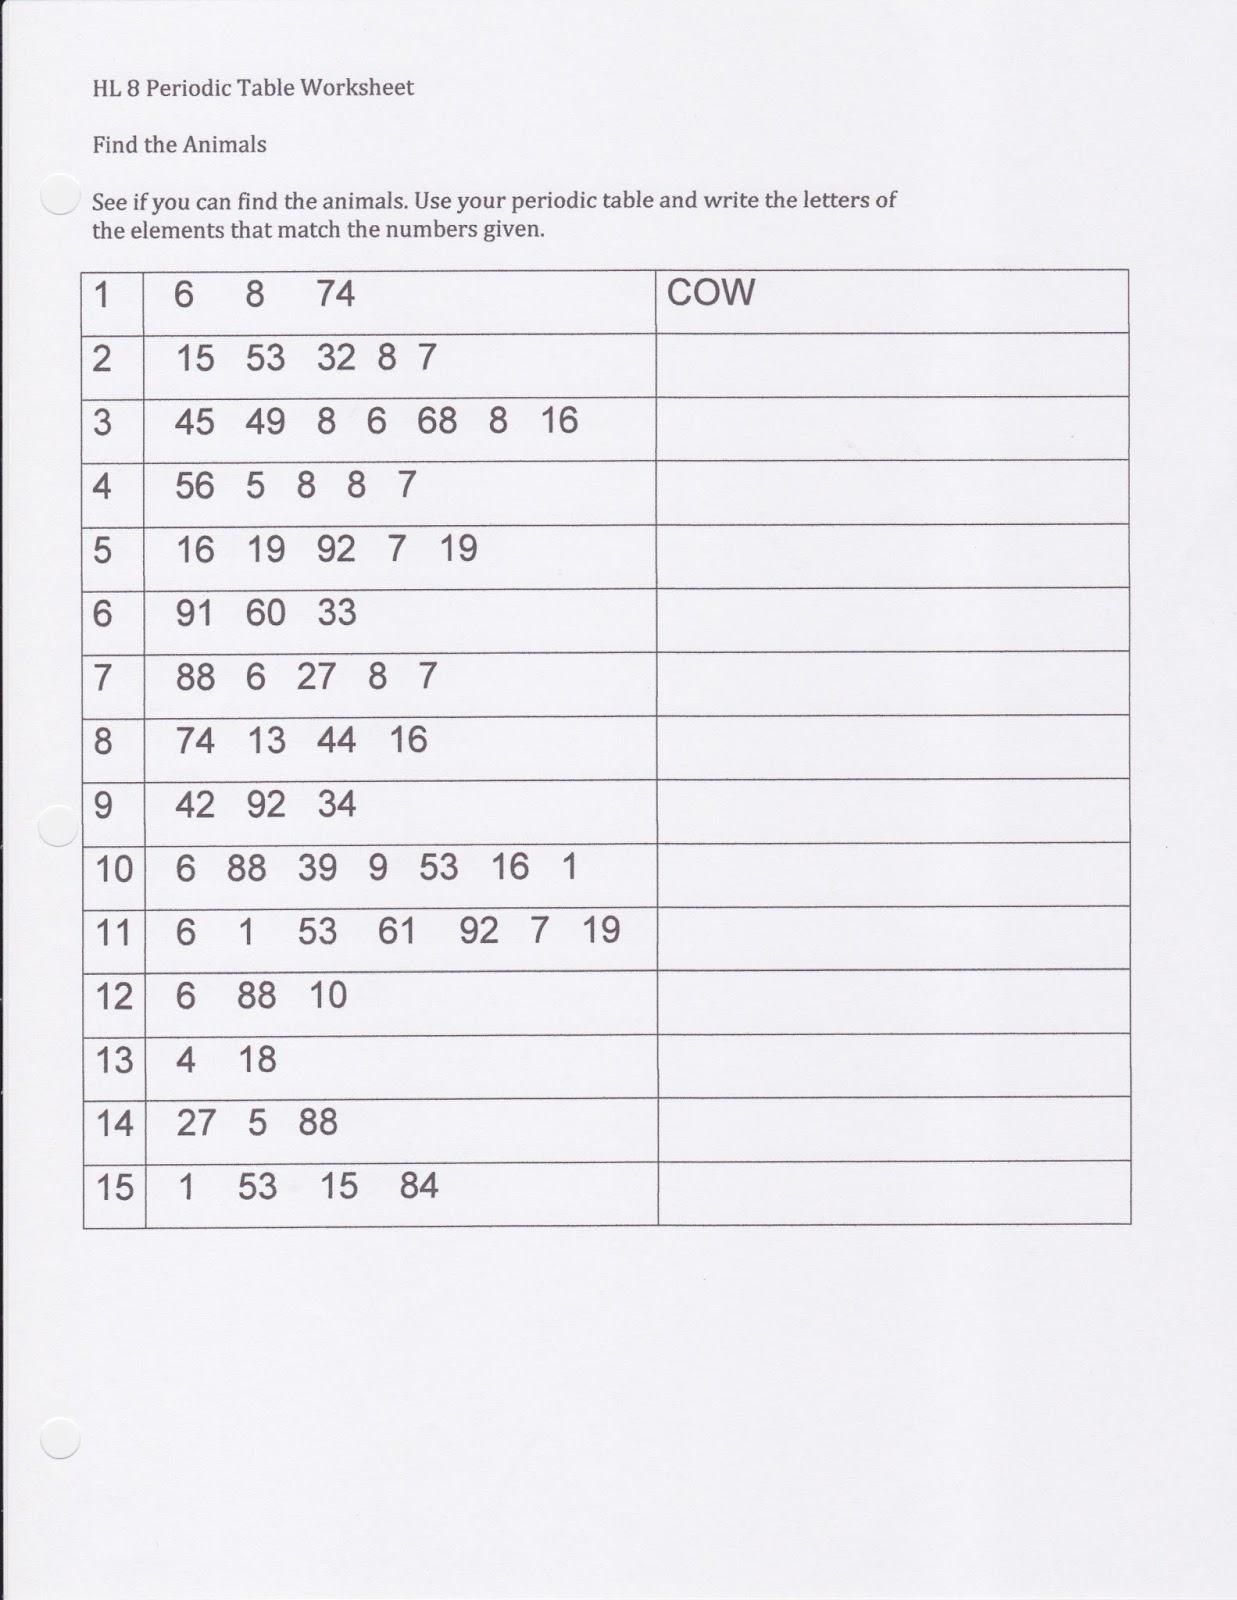 Periodic table of elements scavenger hunt answers www worksheet using the periodic table grass fedjp urtaz Images